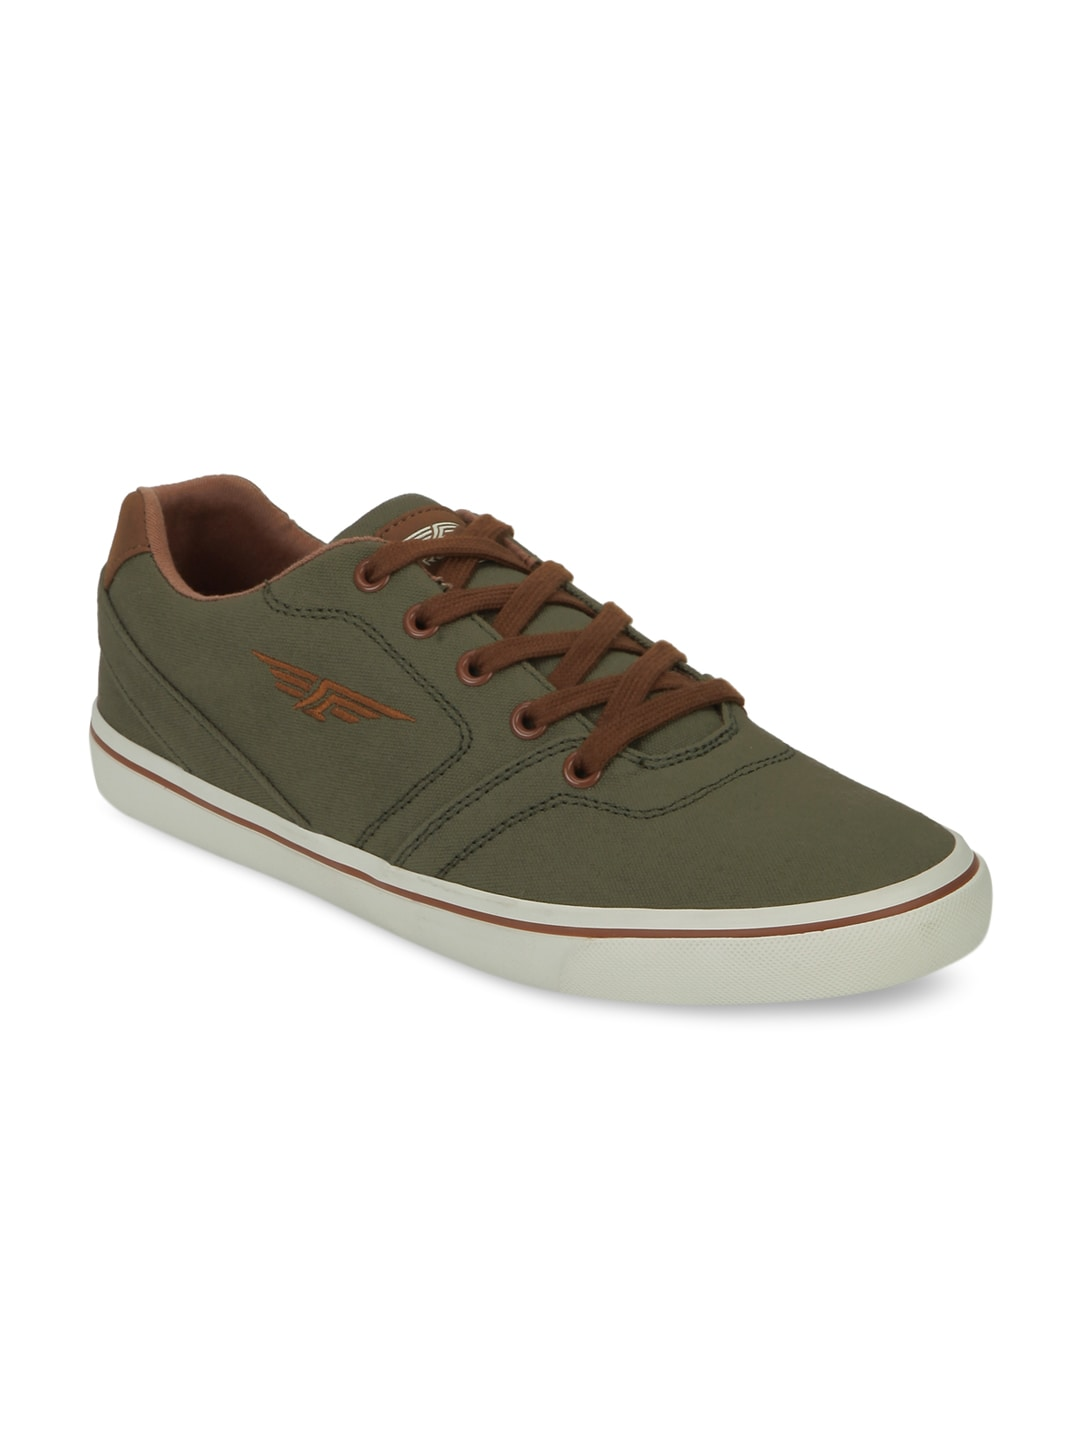 Red Tape Men Olive Green Sneakers image